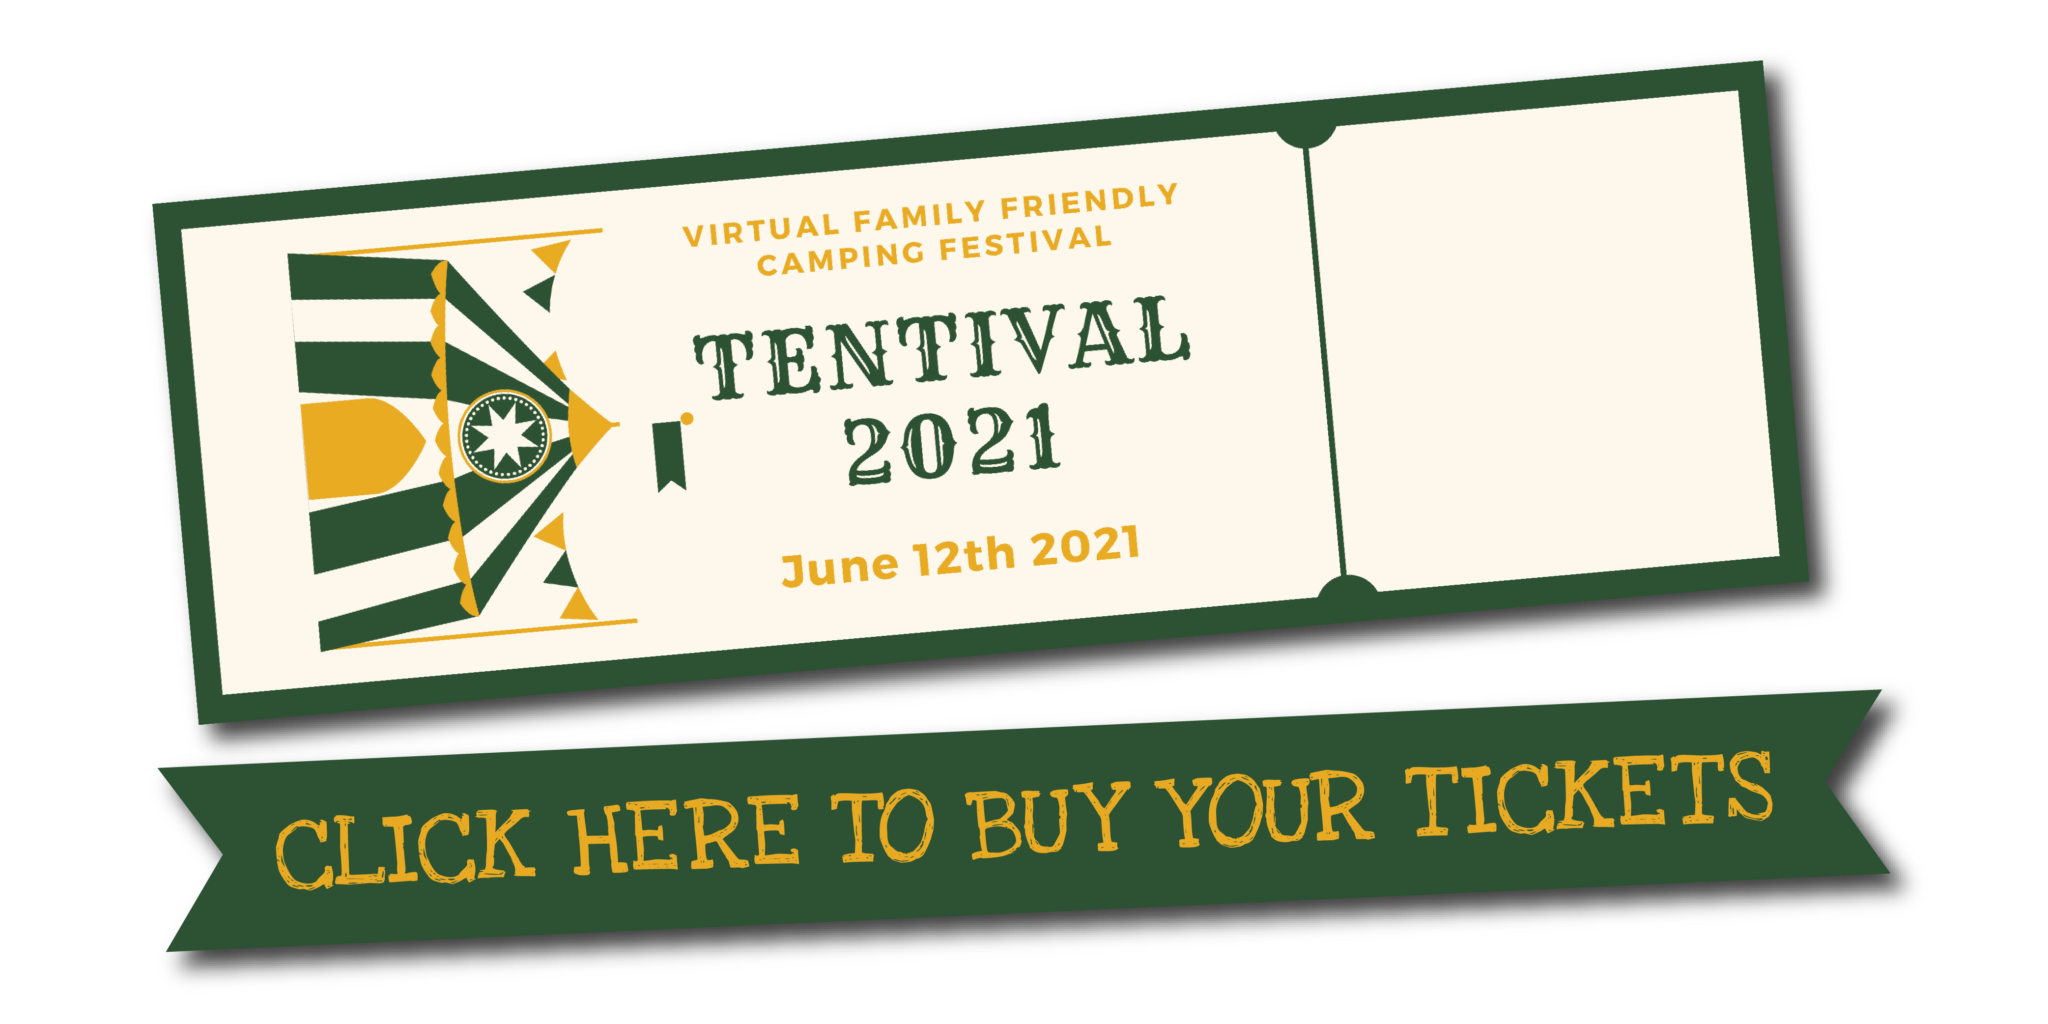 , Tentival 2021 – The Virtual Festival With A Difference